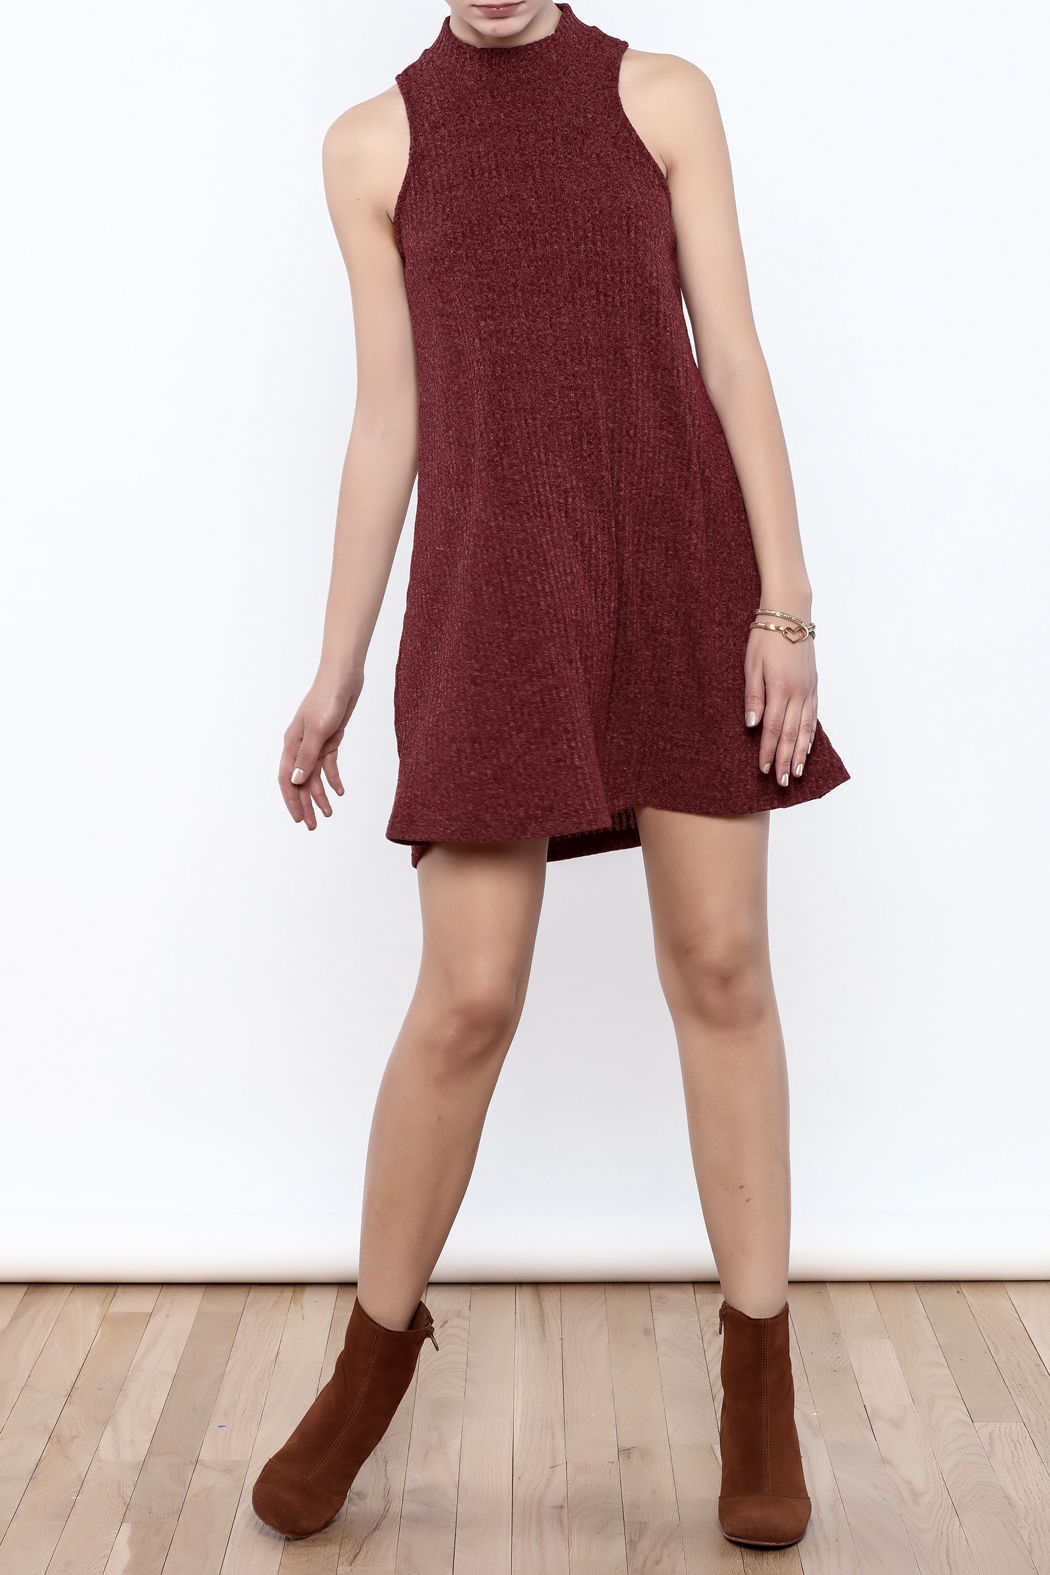 Veronica M Sleeveless Sweater Dress - Front Full Image